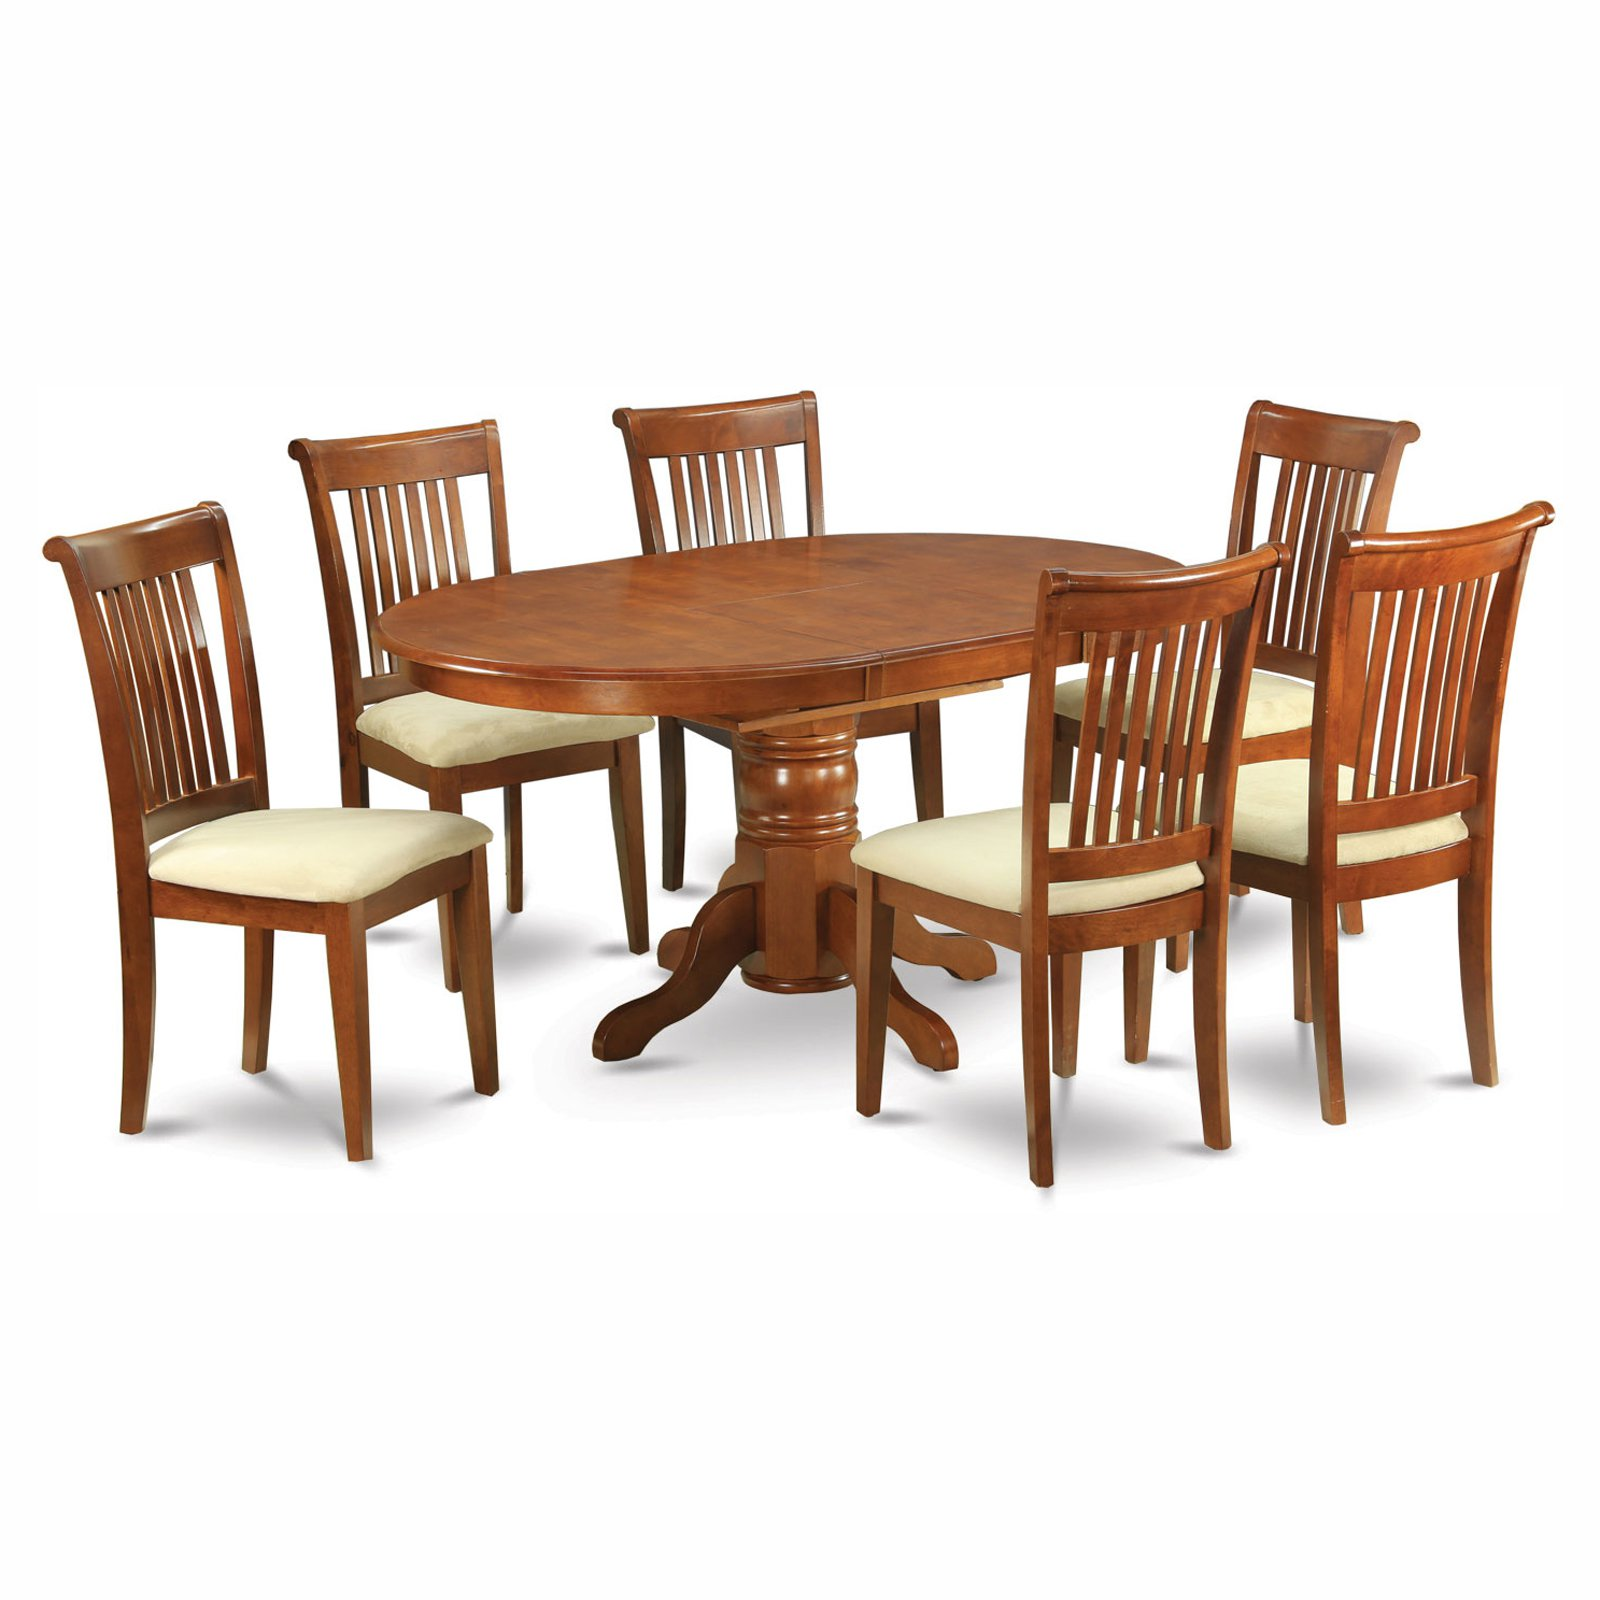 East West Furniture Avon 5 Piece Pedestal Oval Dining Table Set with Portland Microfiber Seat Chairs